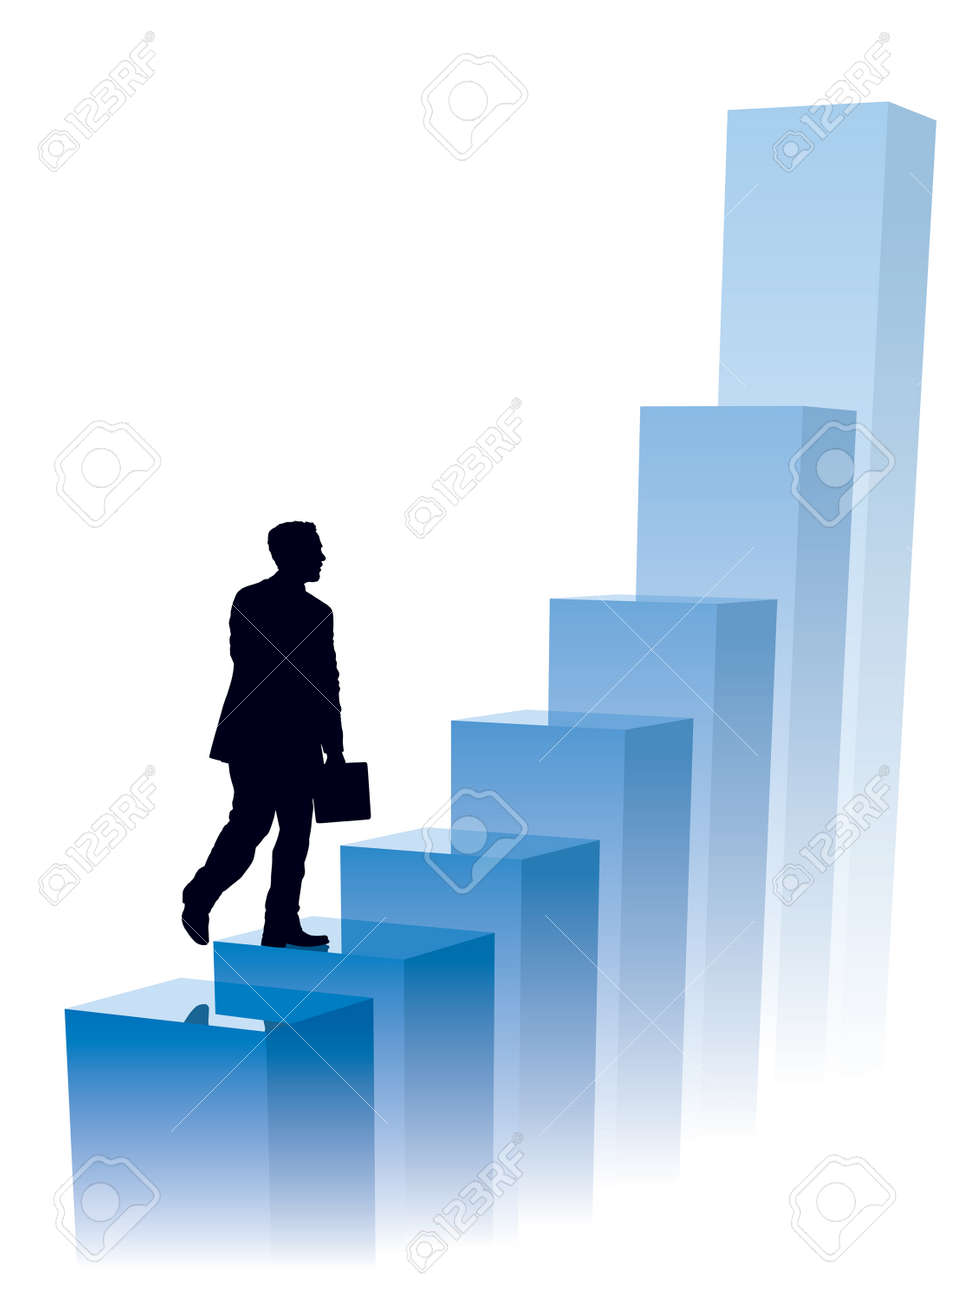 Businessman in a hurry, conceptual business illustration. Stock Vector - 3867499